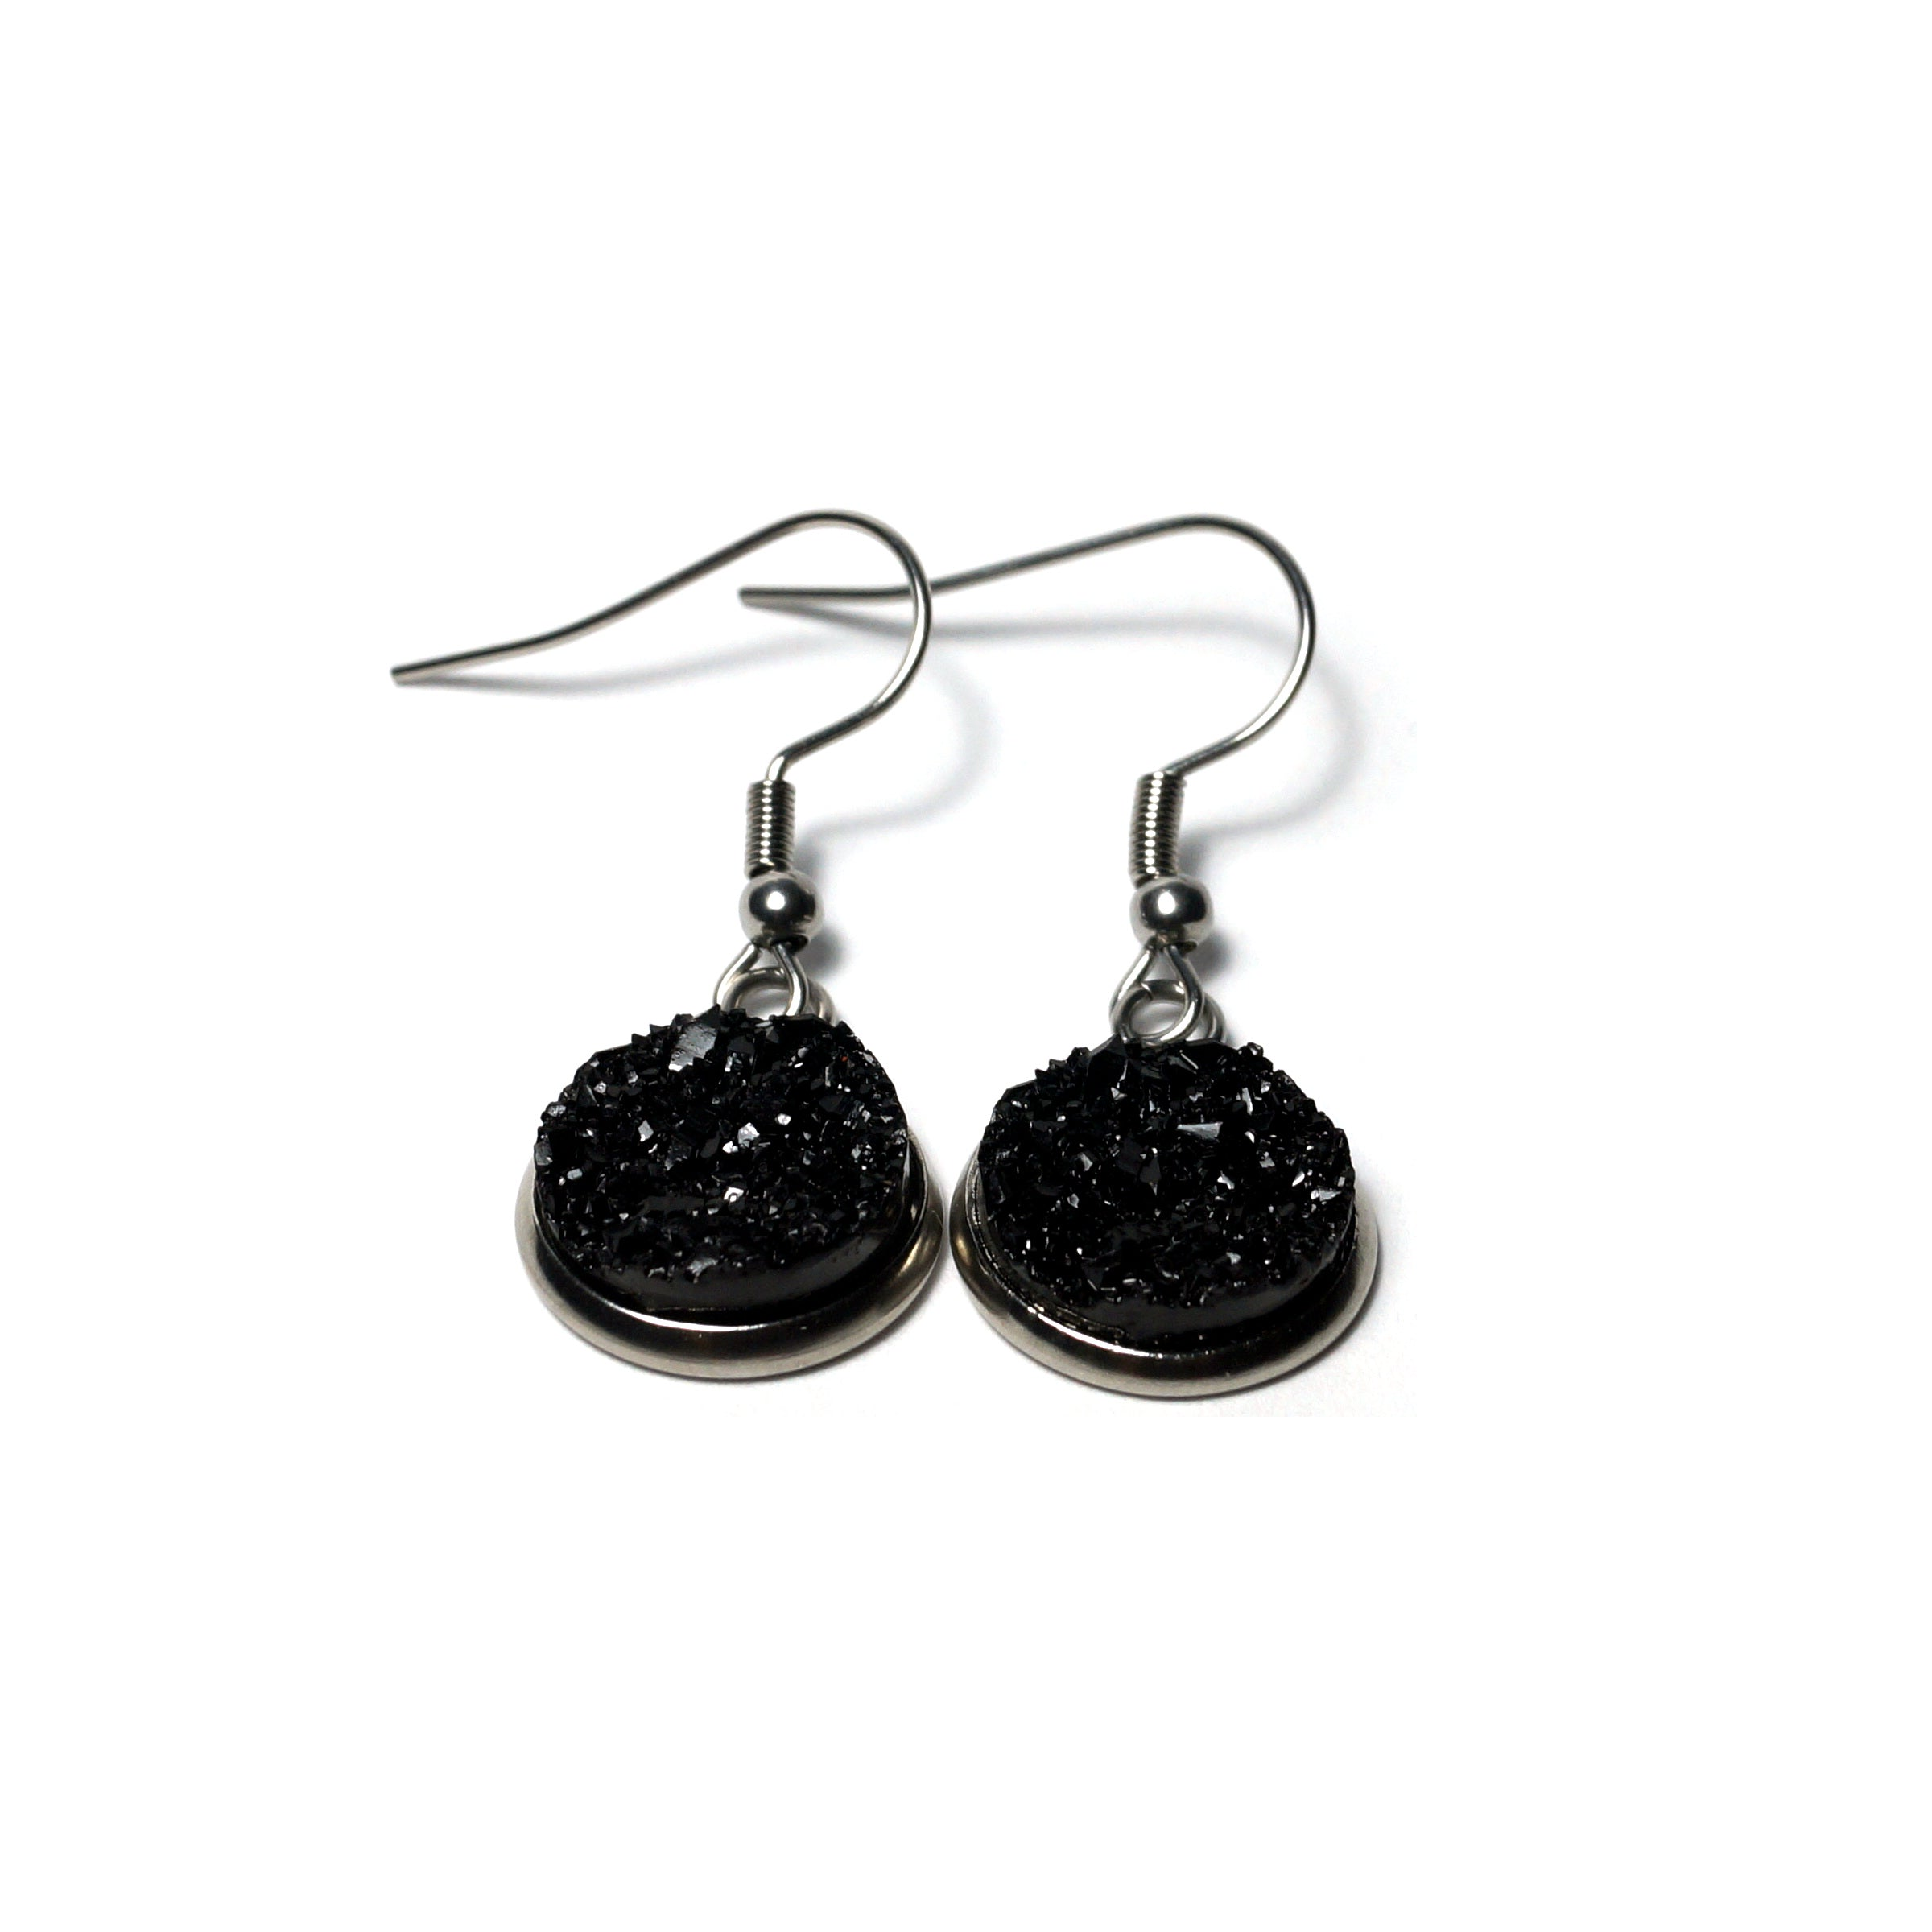 Shop Black Stainless Steel Drop Earrings (14mm)-Jarvi